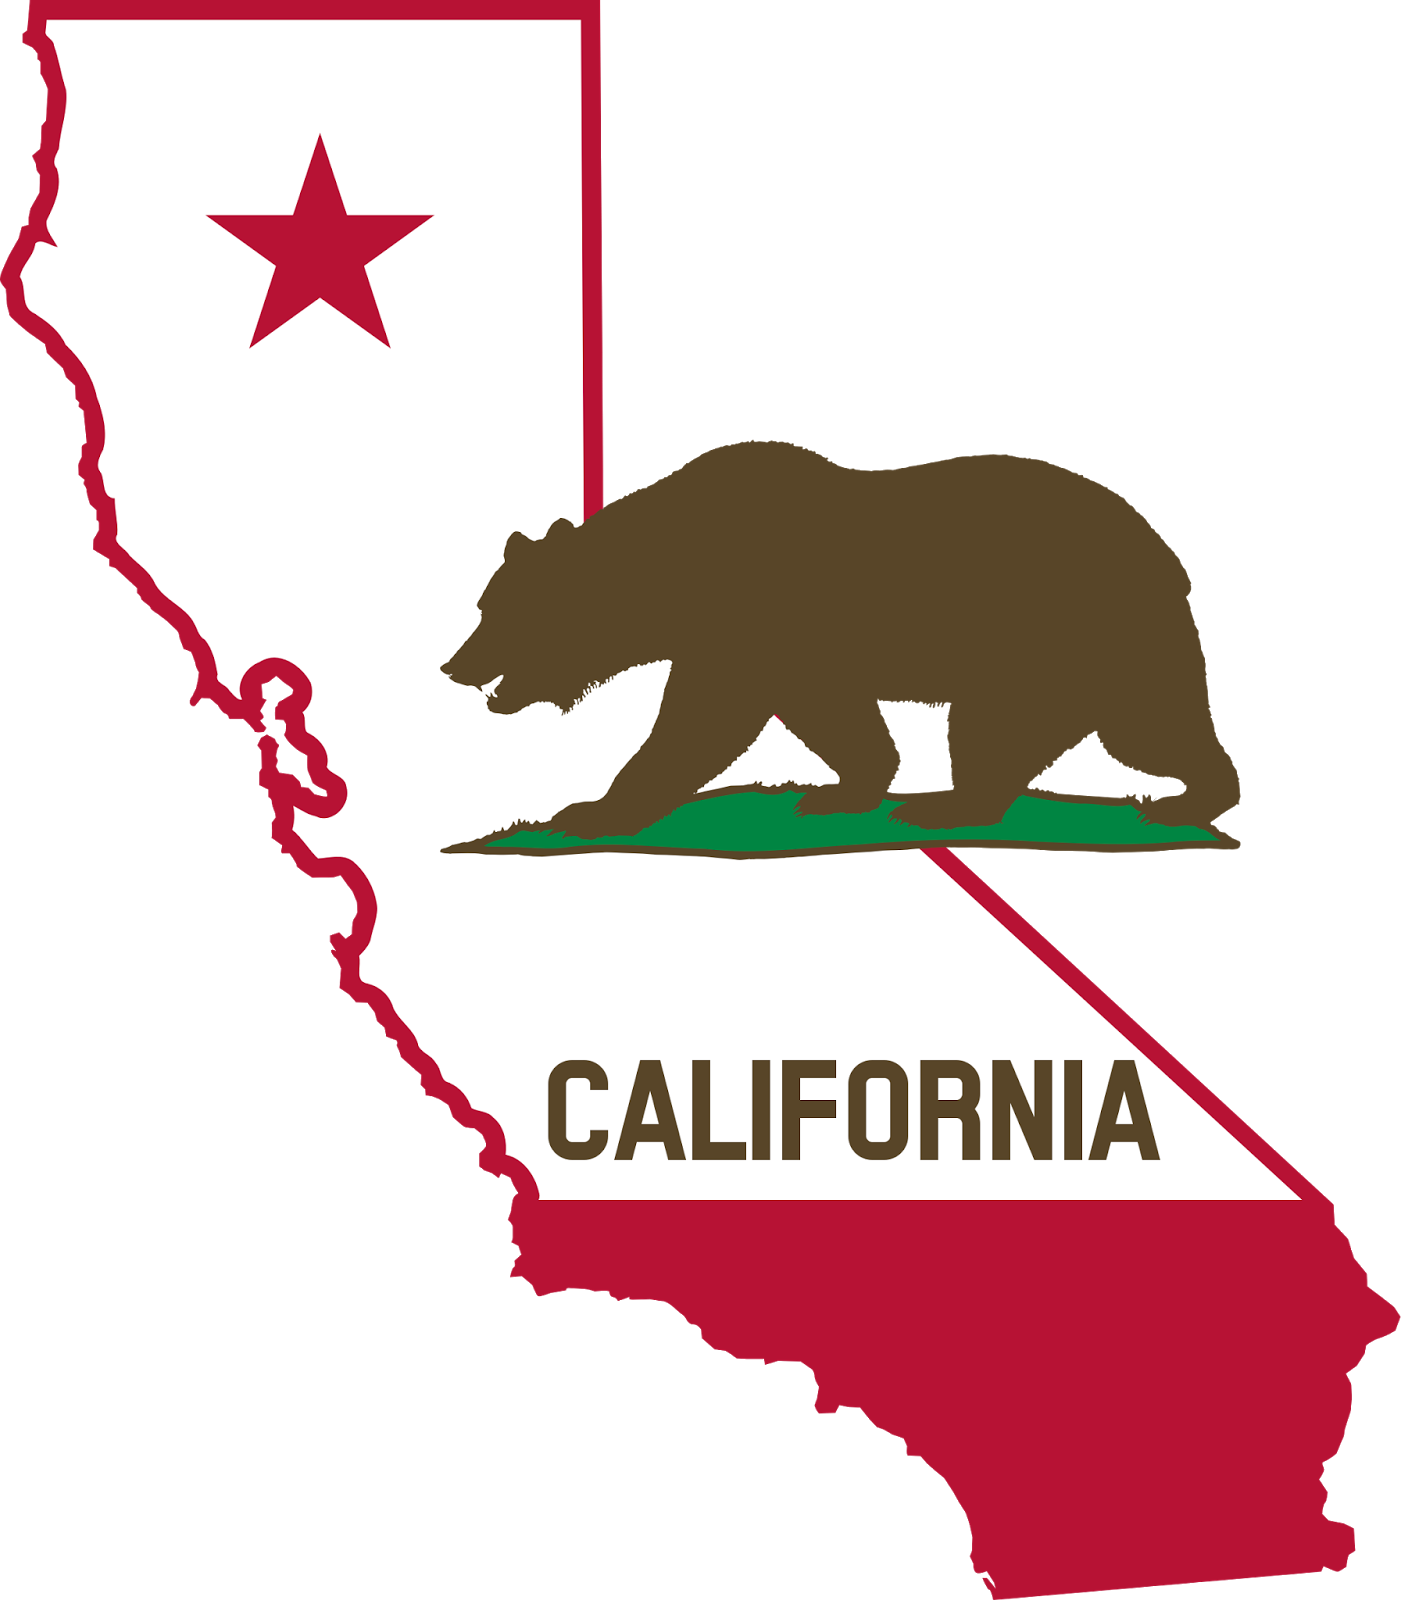 California Moving Towards Surpassing the United Kingdom as the 5th ...